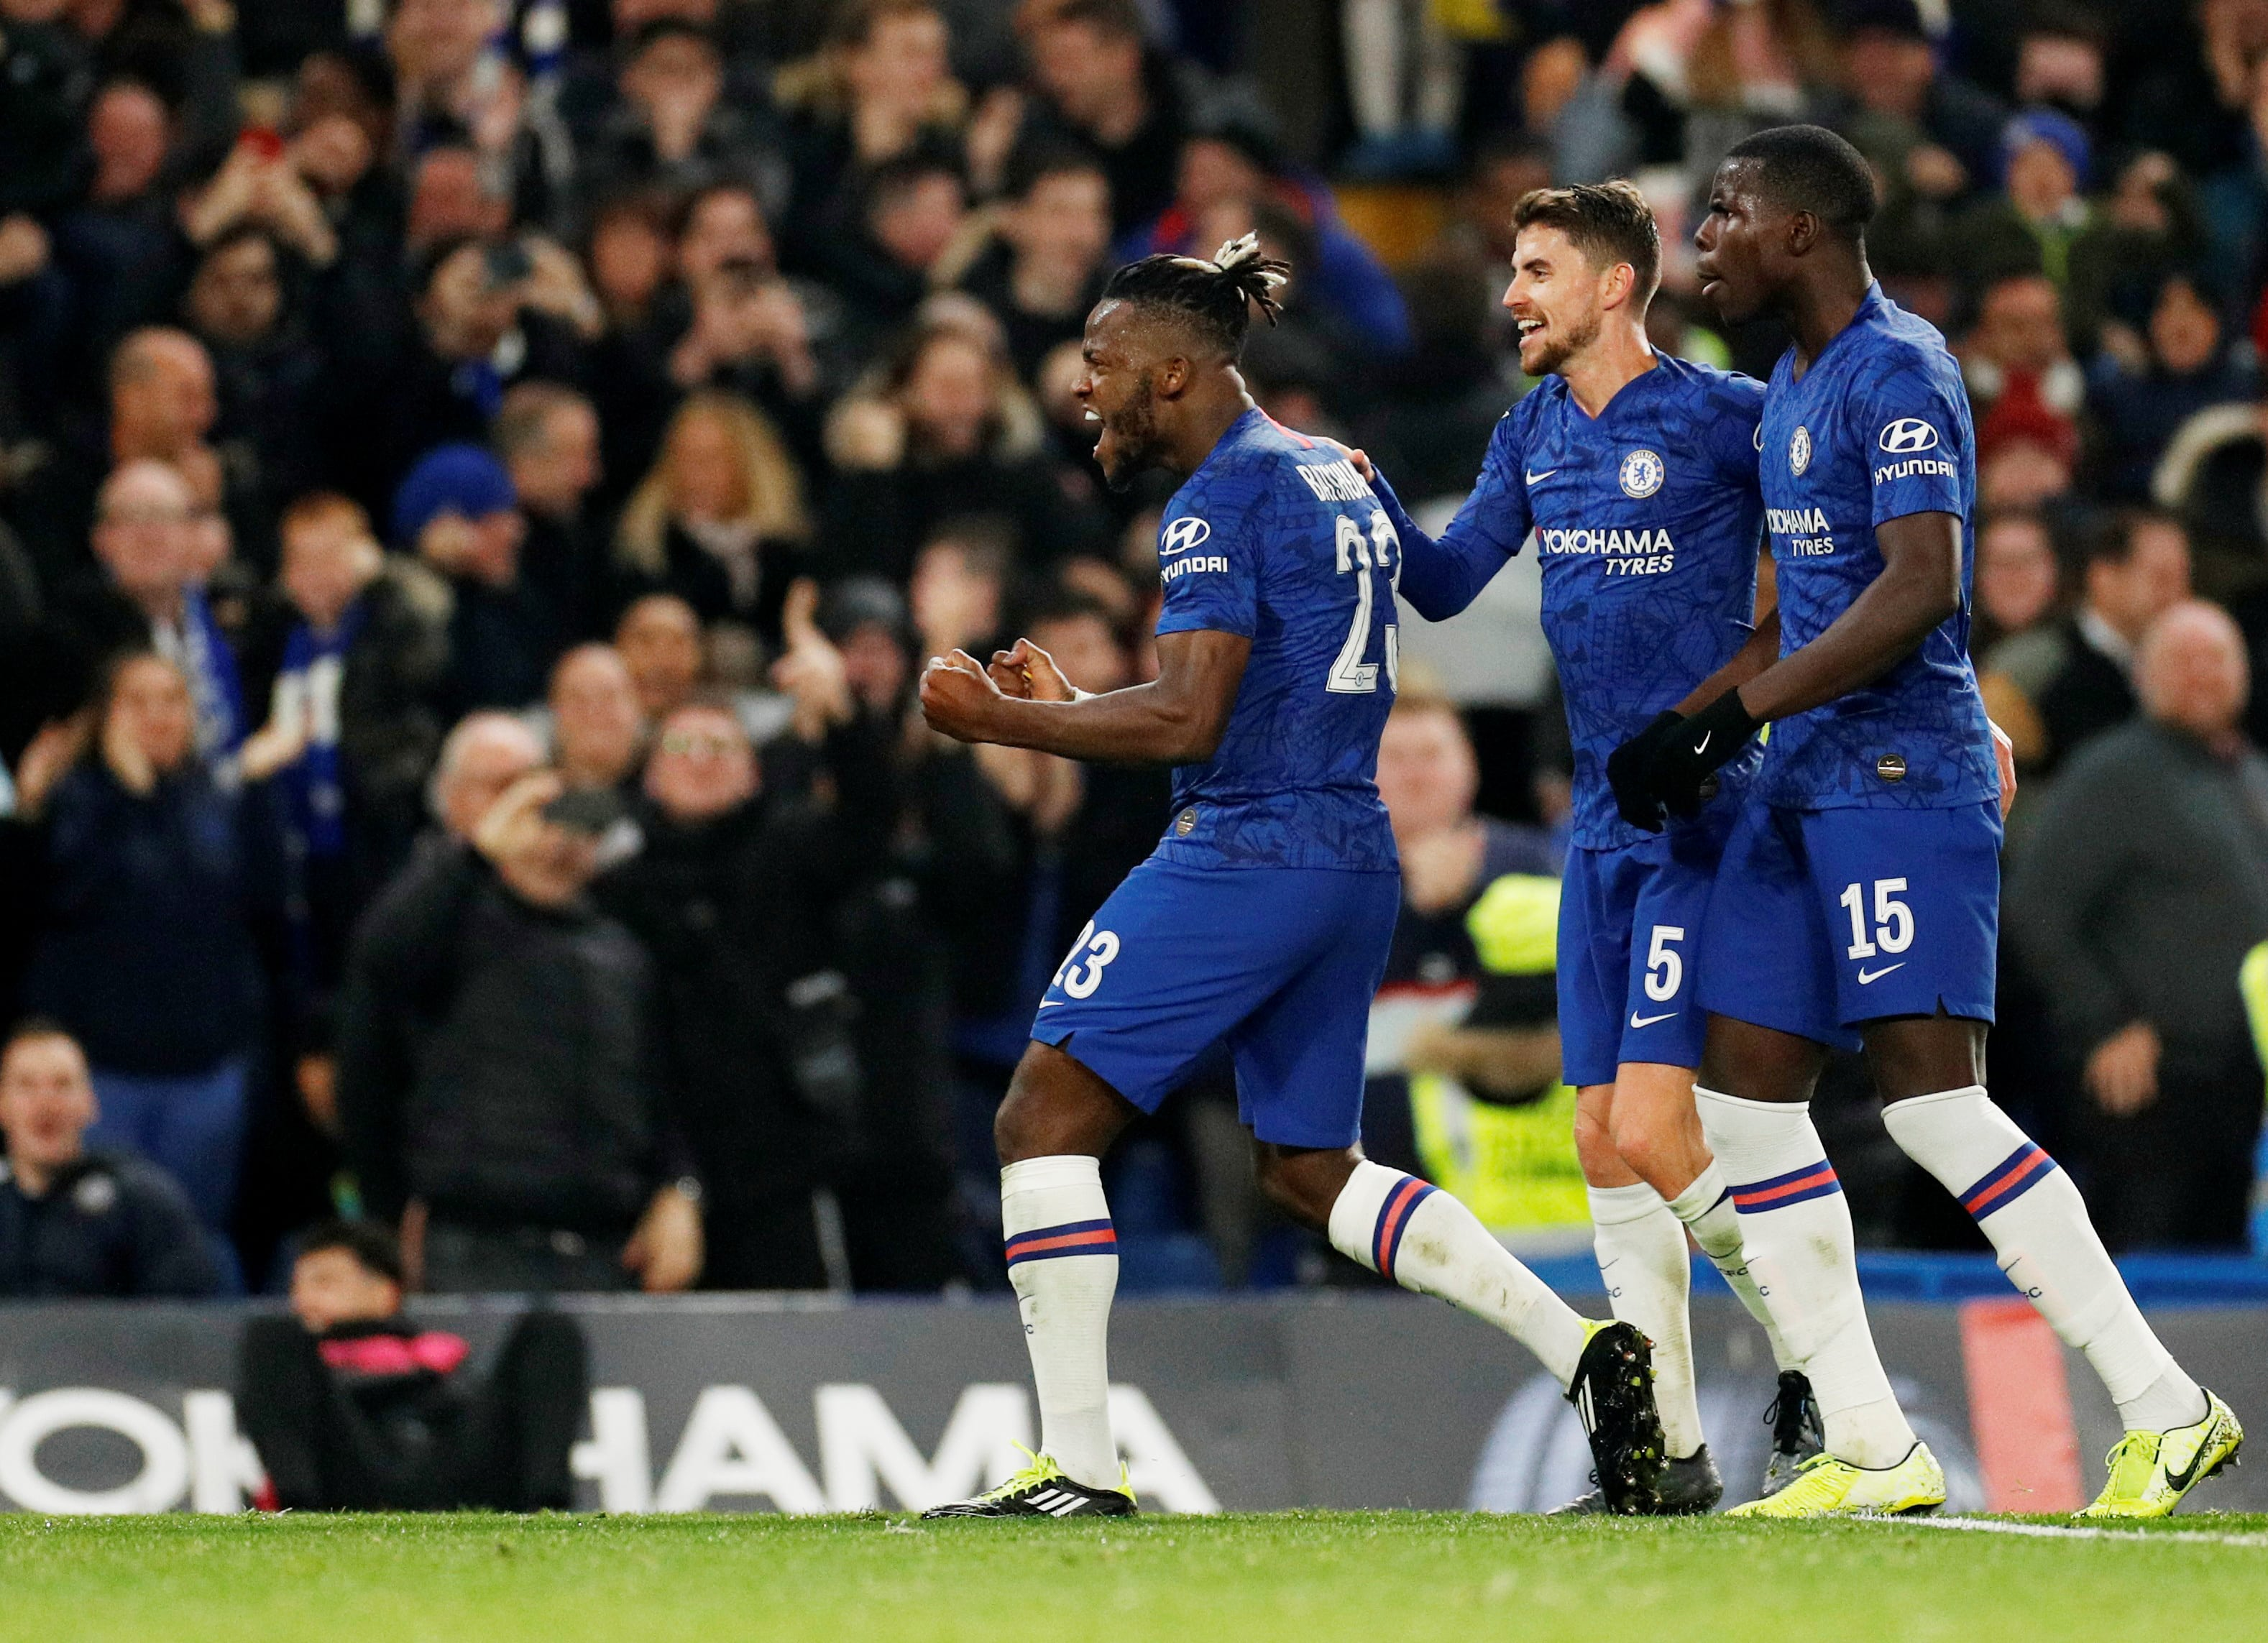 Why Chelsea received a two-window transfer ban according to FIFA